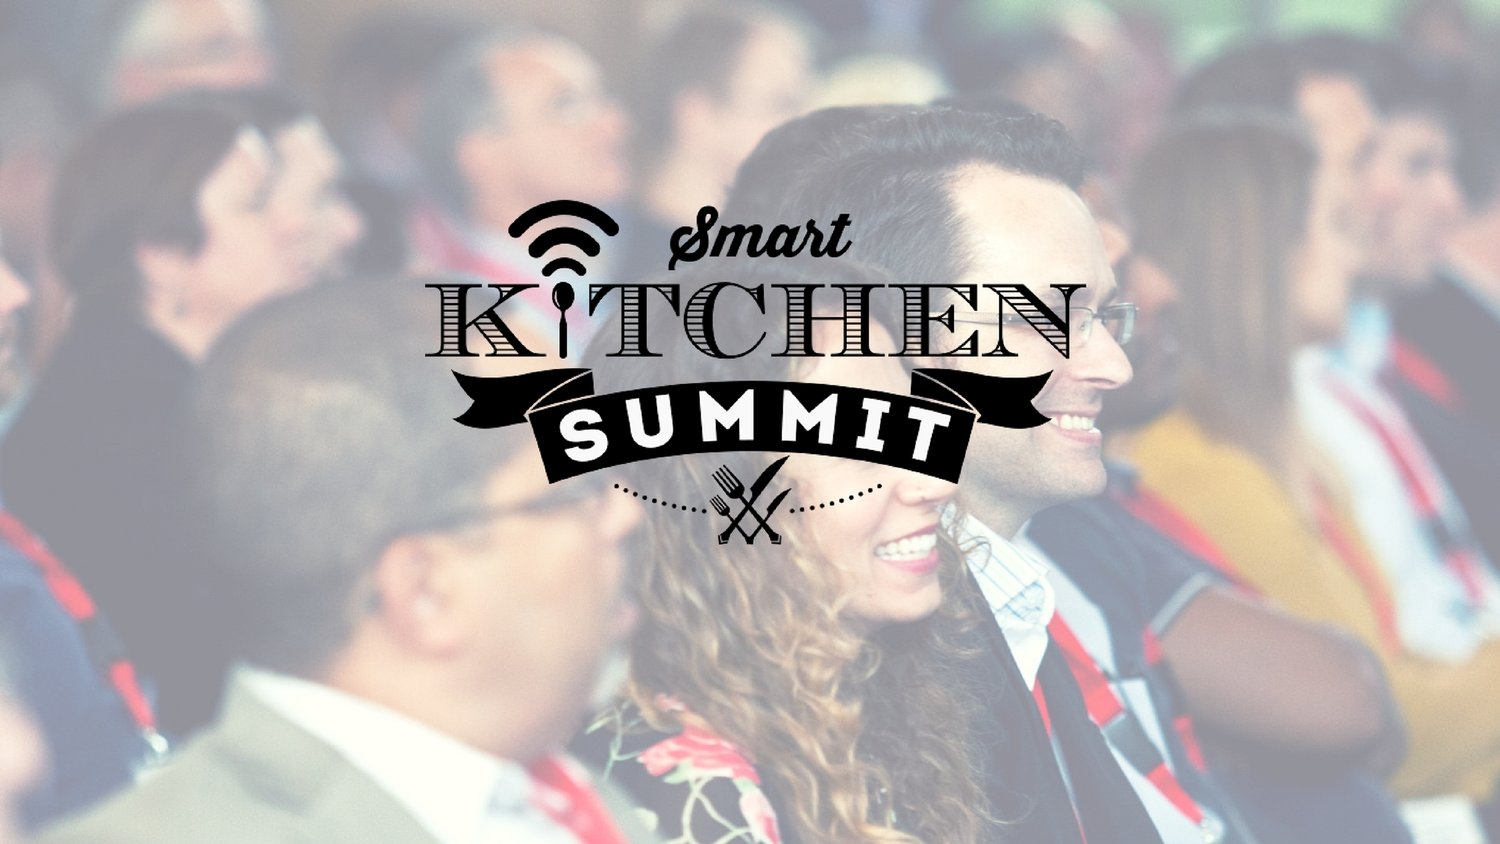 The Smart Kitchen Summit - Smart kitchen